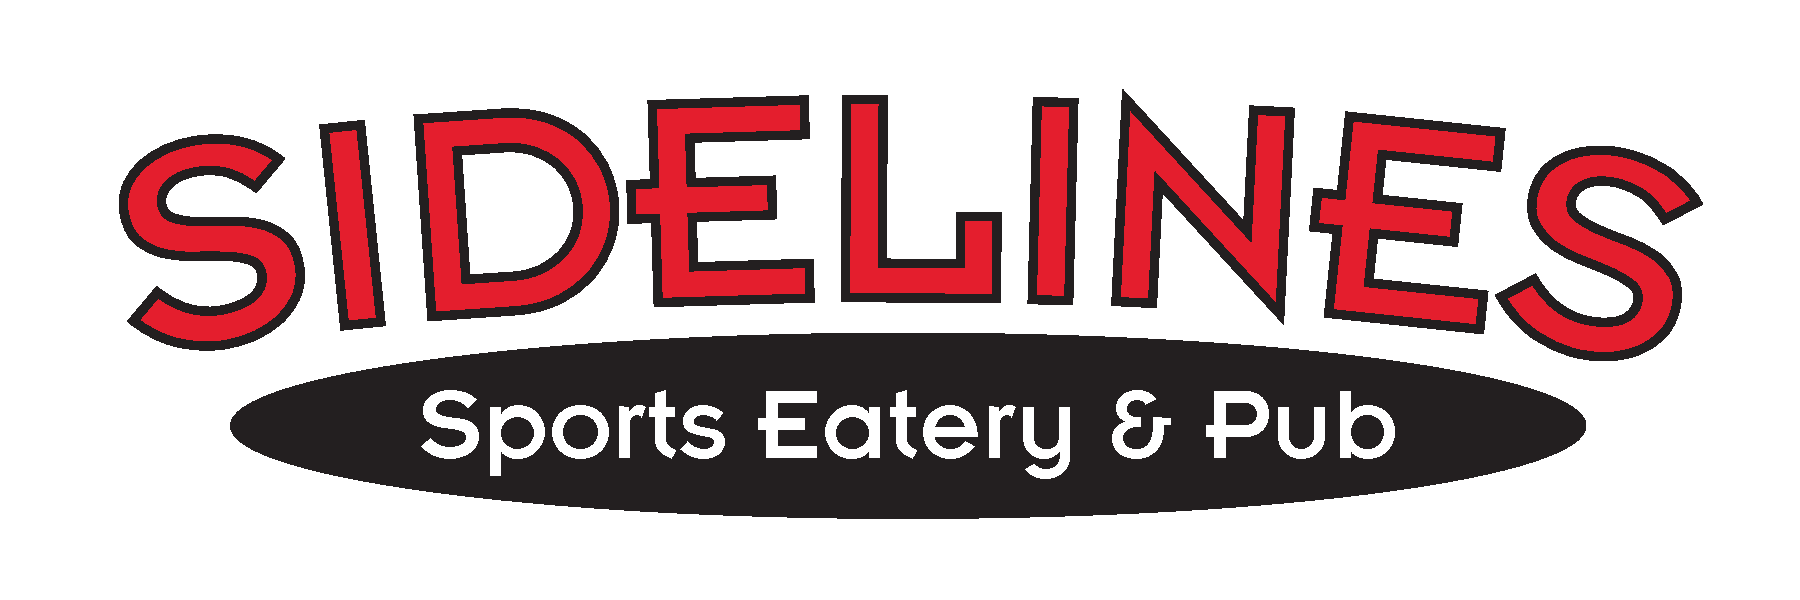 SIDELINES SPORTS EATERY (Maumee)